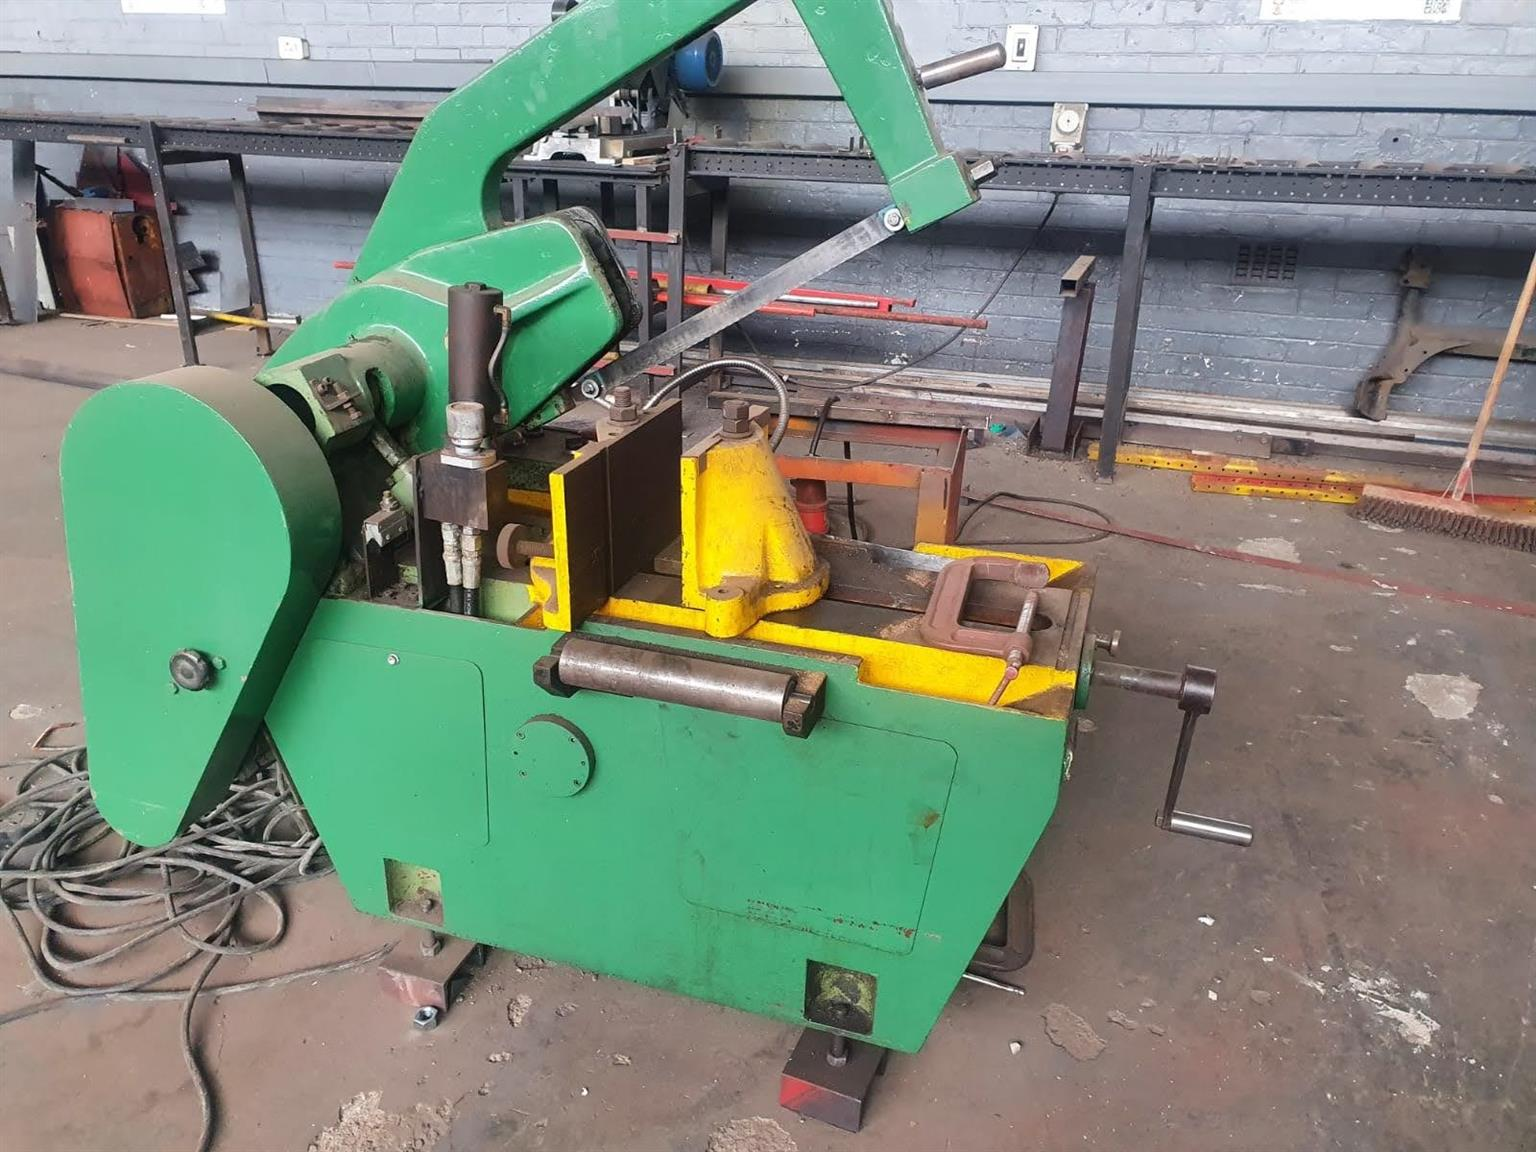 Automatic hack saw with hydraulic feed and pump